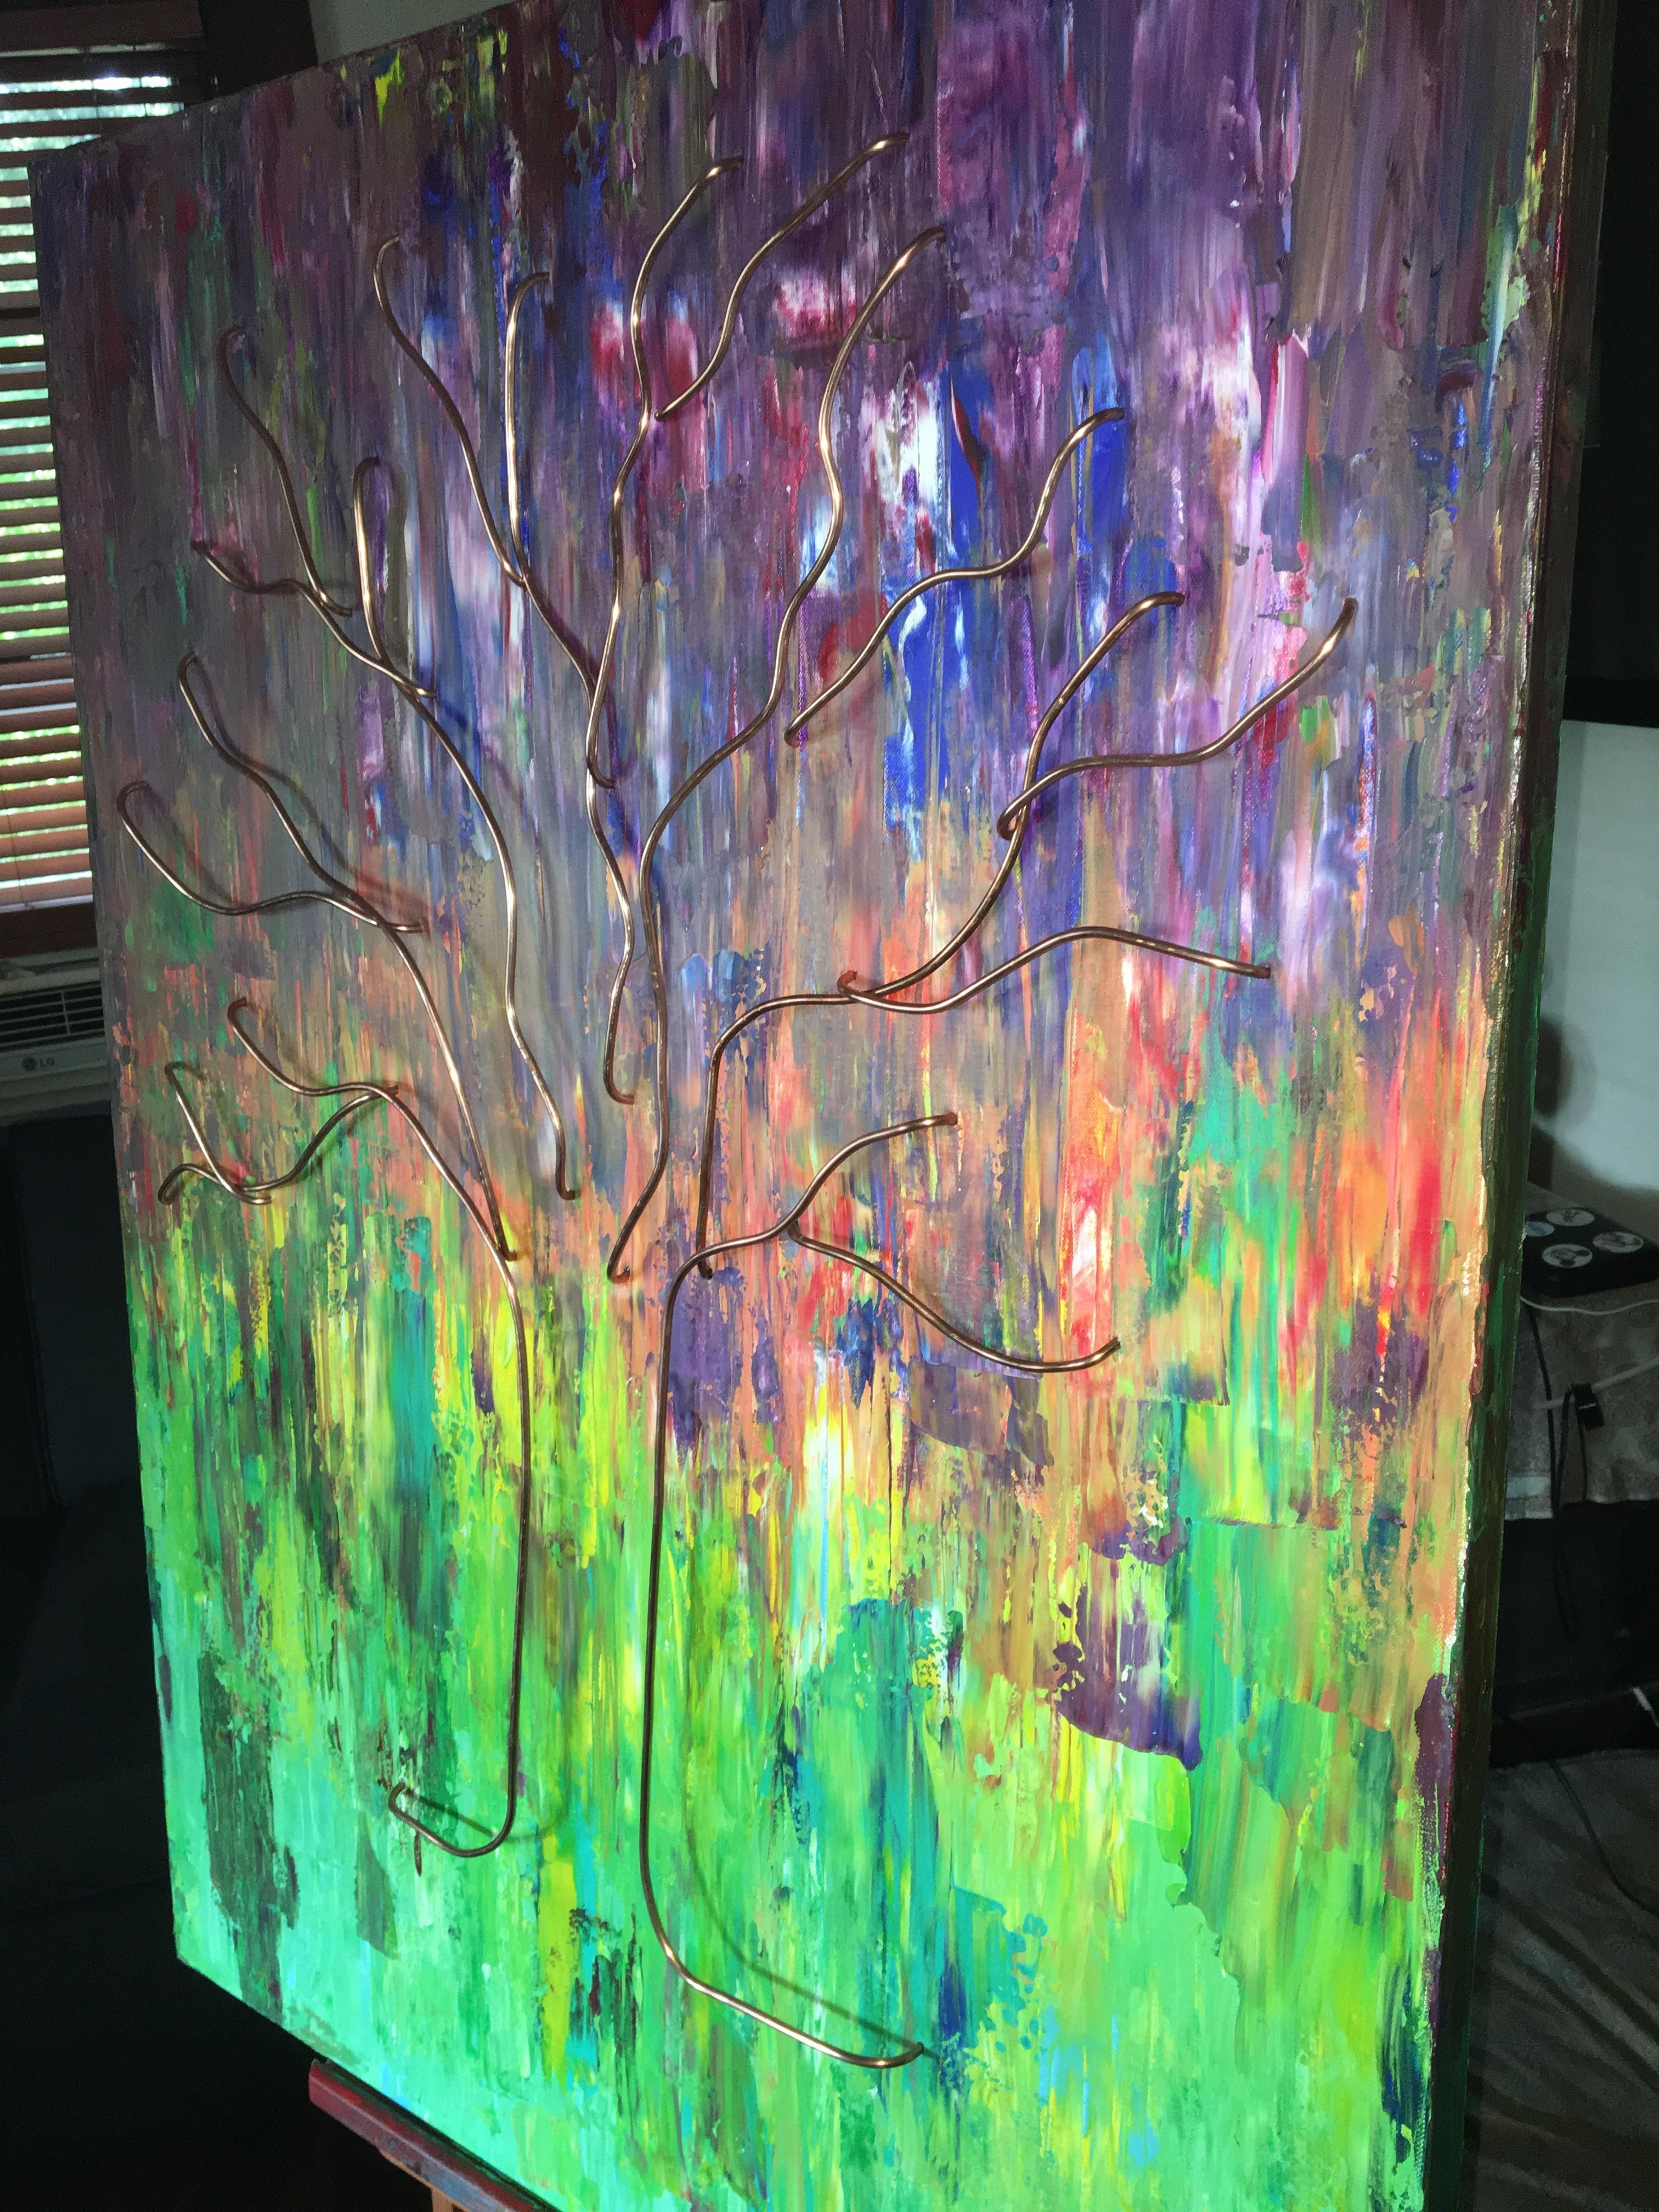 Copper tree 40x30x2 acrylic and copper wire on gallery wrapped canvas chad dustin ryter me